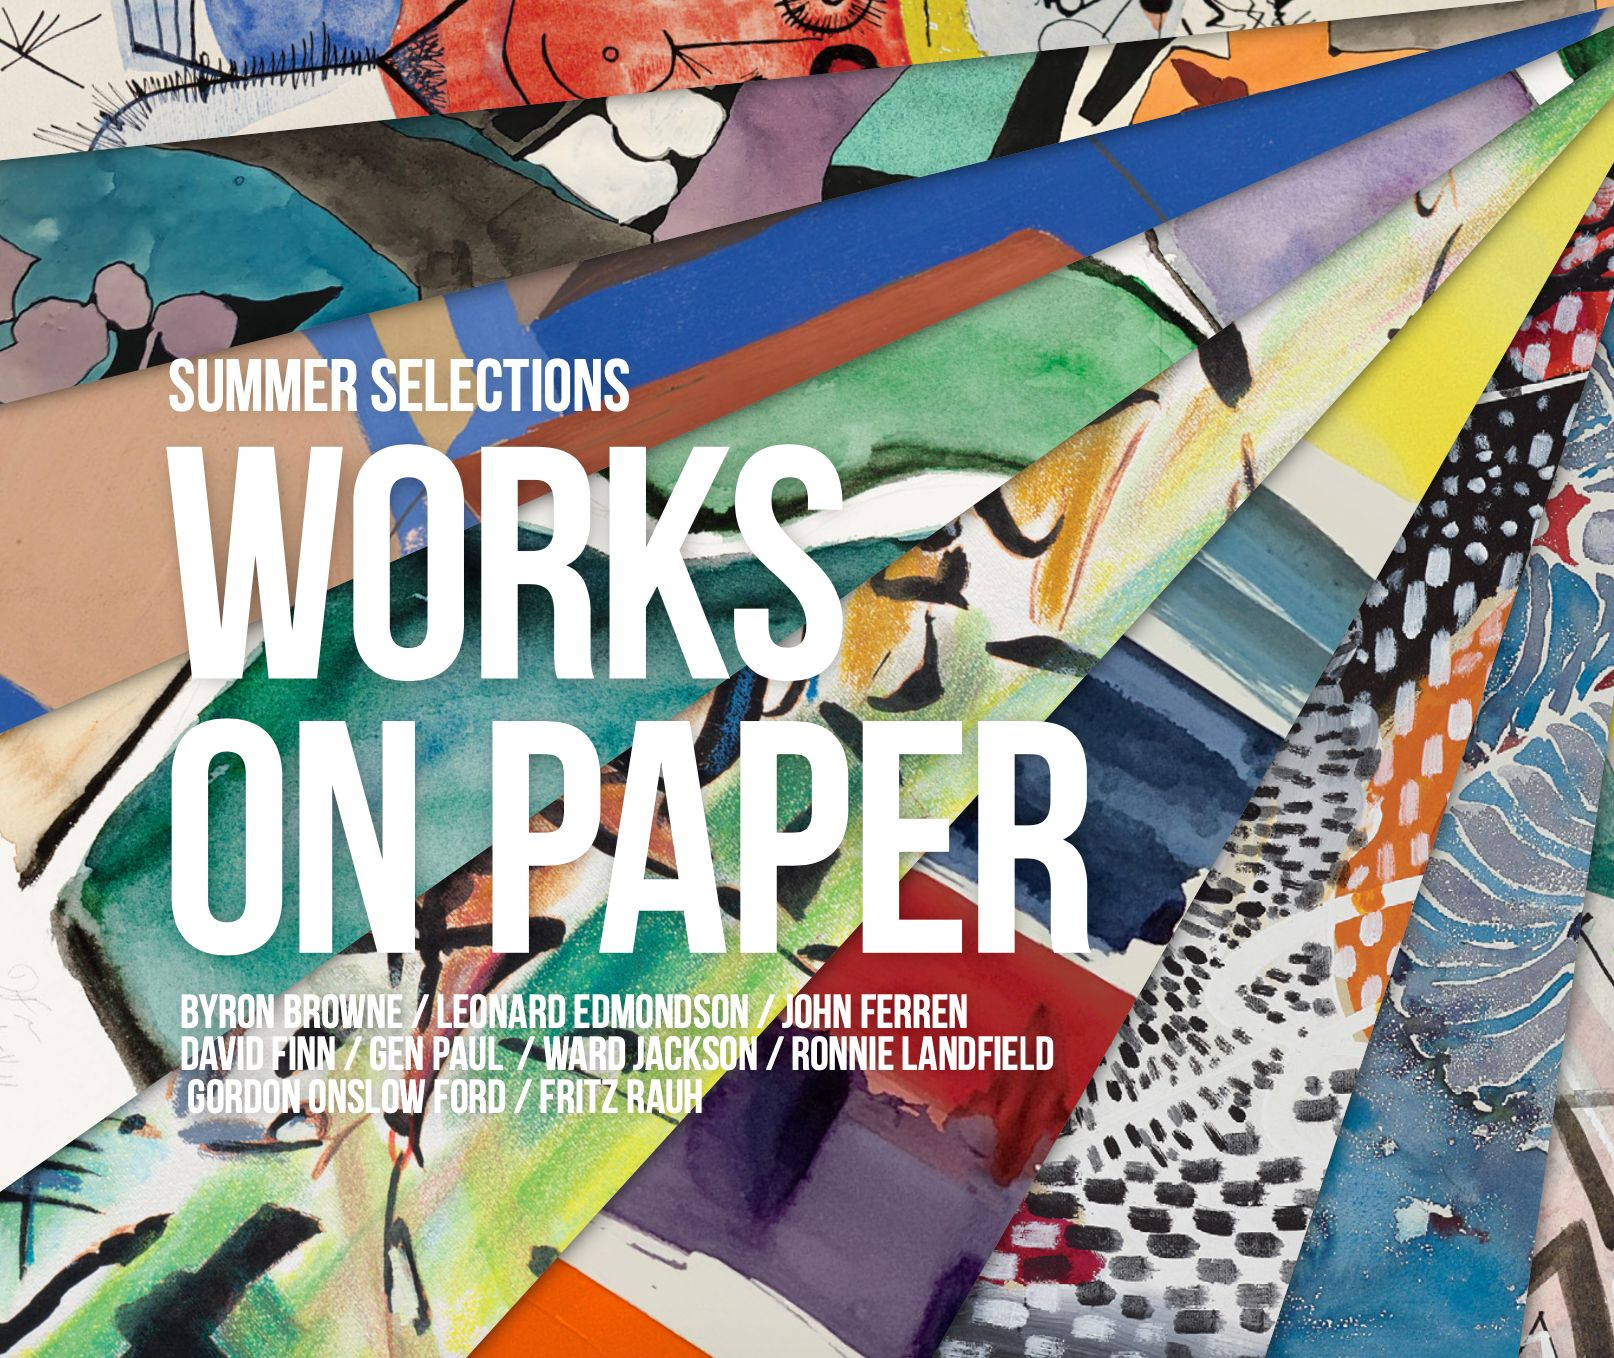 Findlay works on paper feature